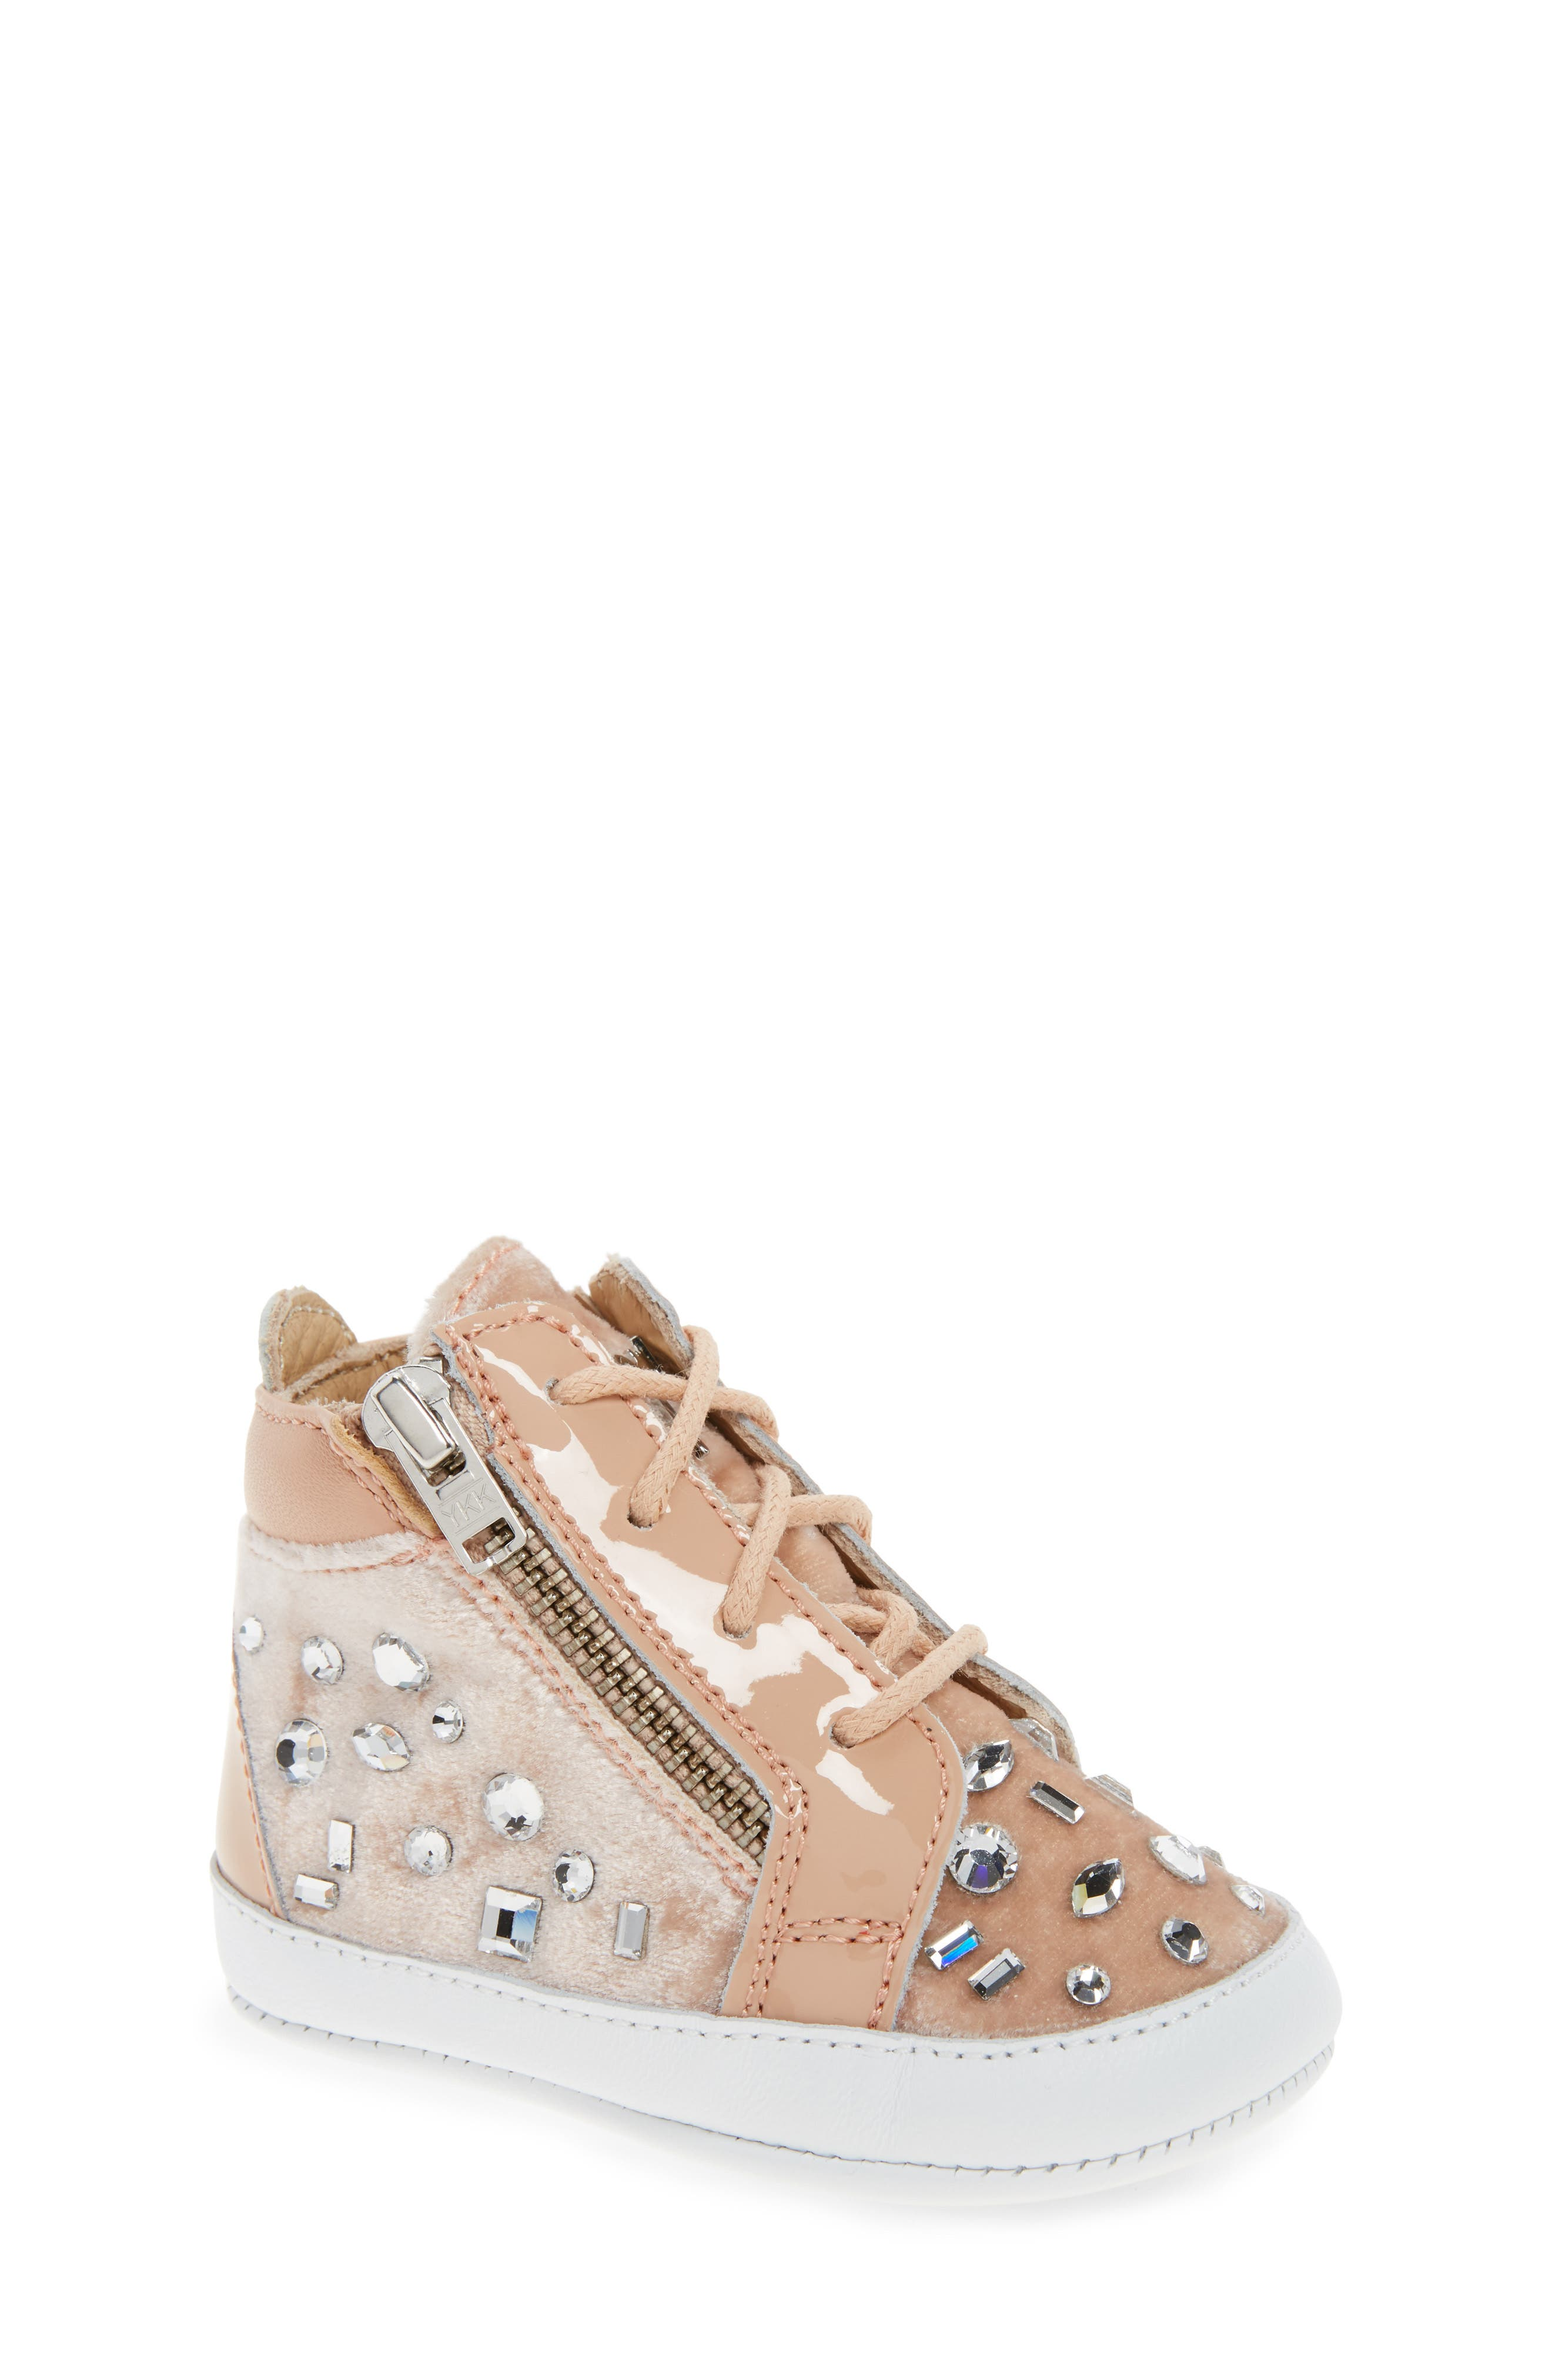 Veronica Embellished Sneaker,                             Main thumbnail 1, color,                             250